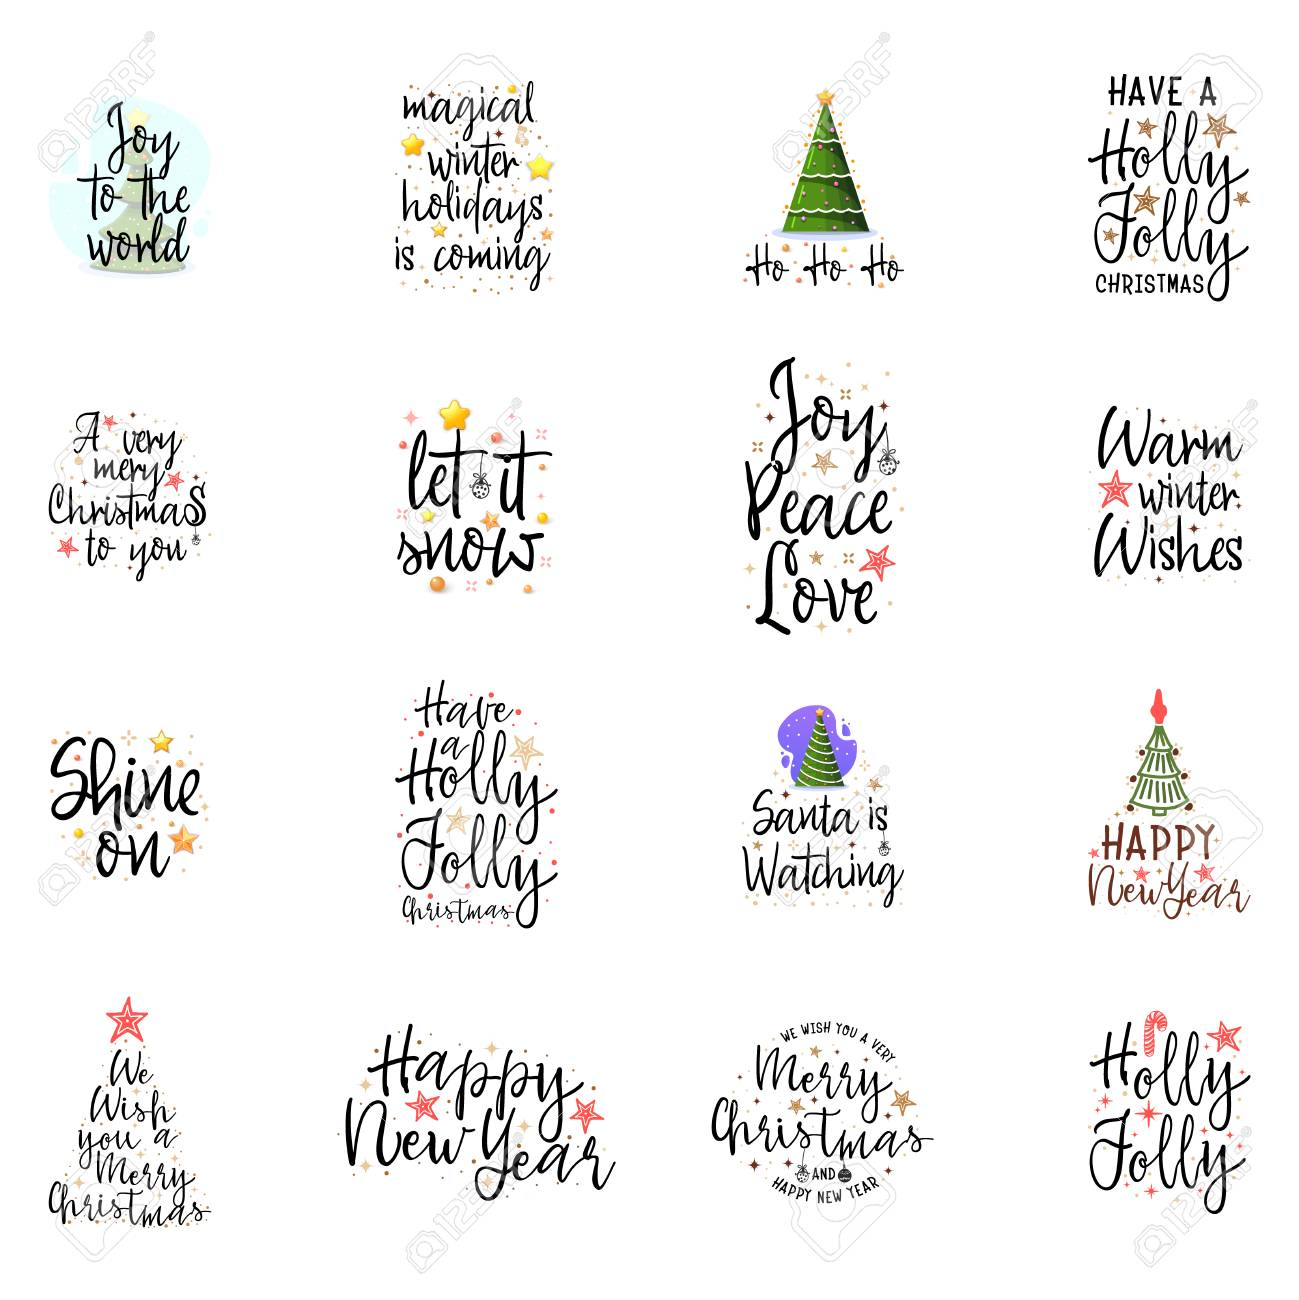 Christmas Posters.Slogans For The New Year Christmas Posters For An Interior Or